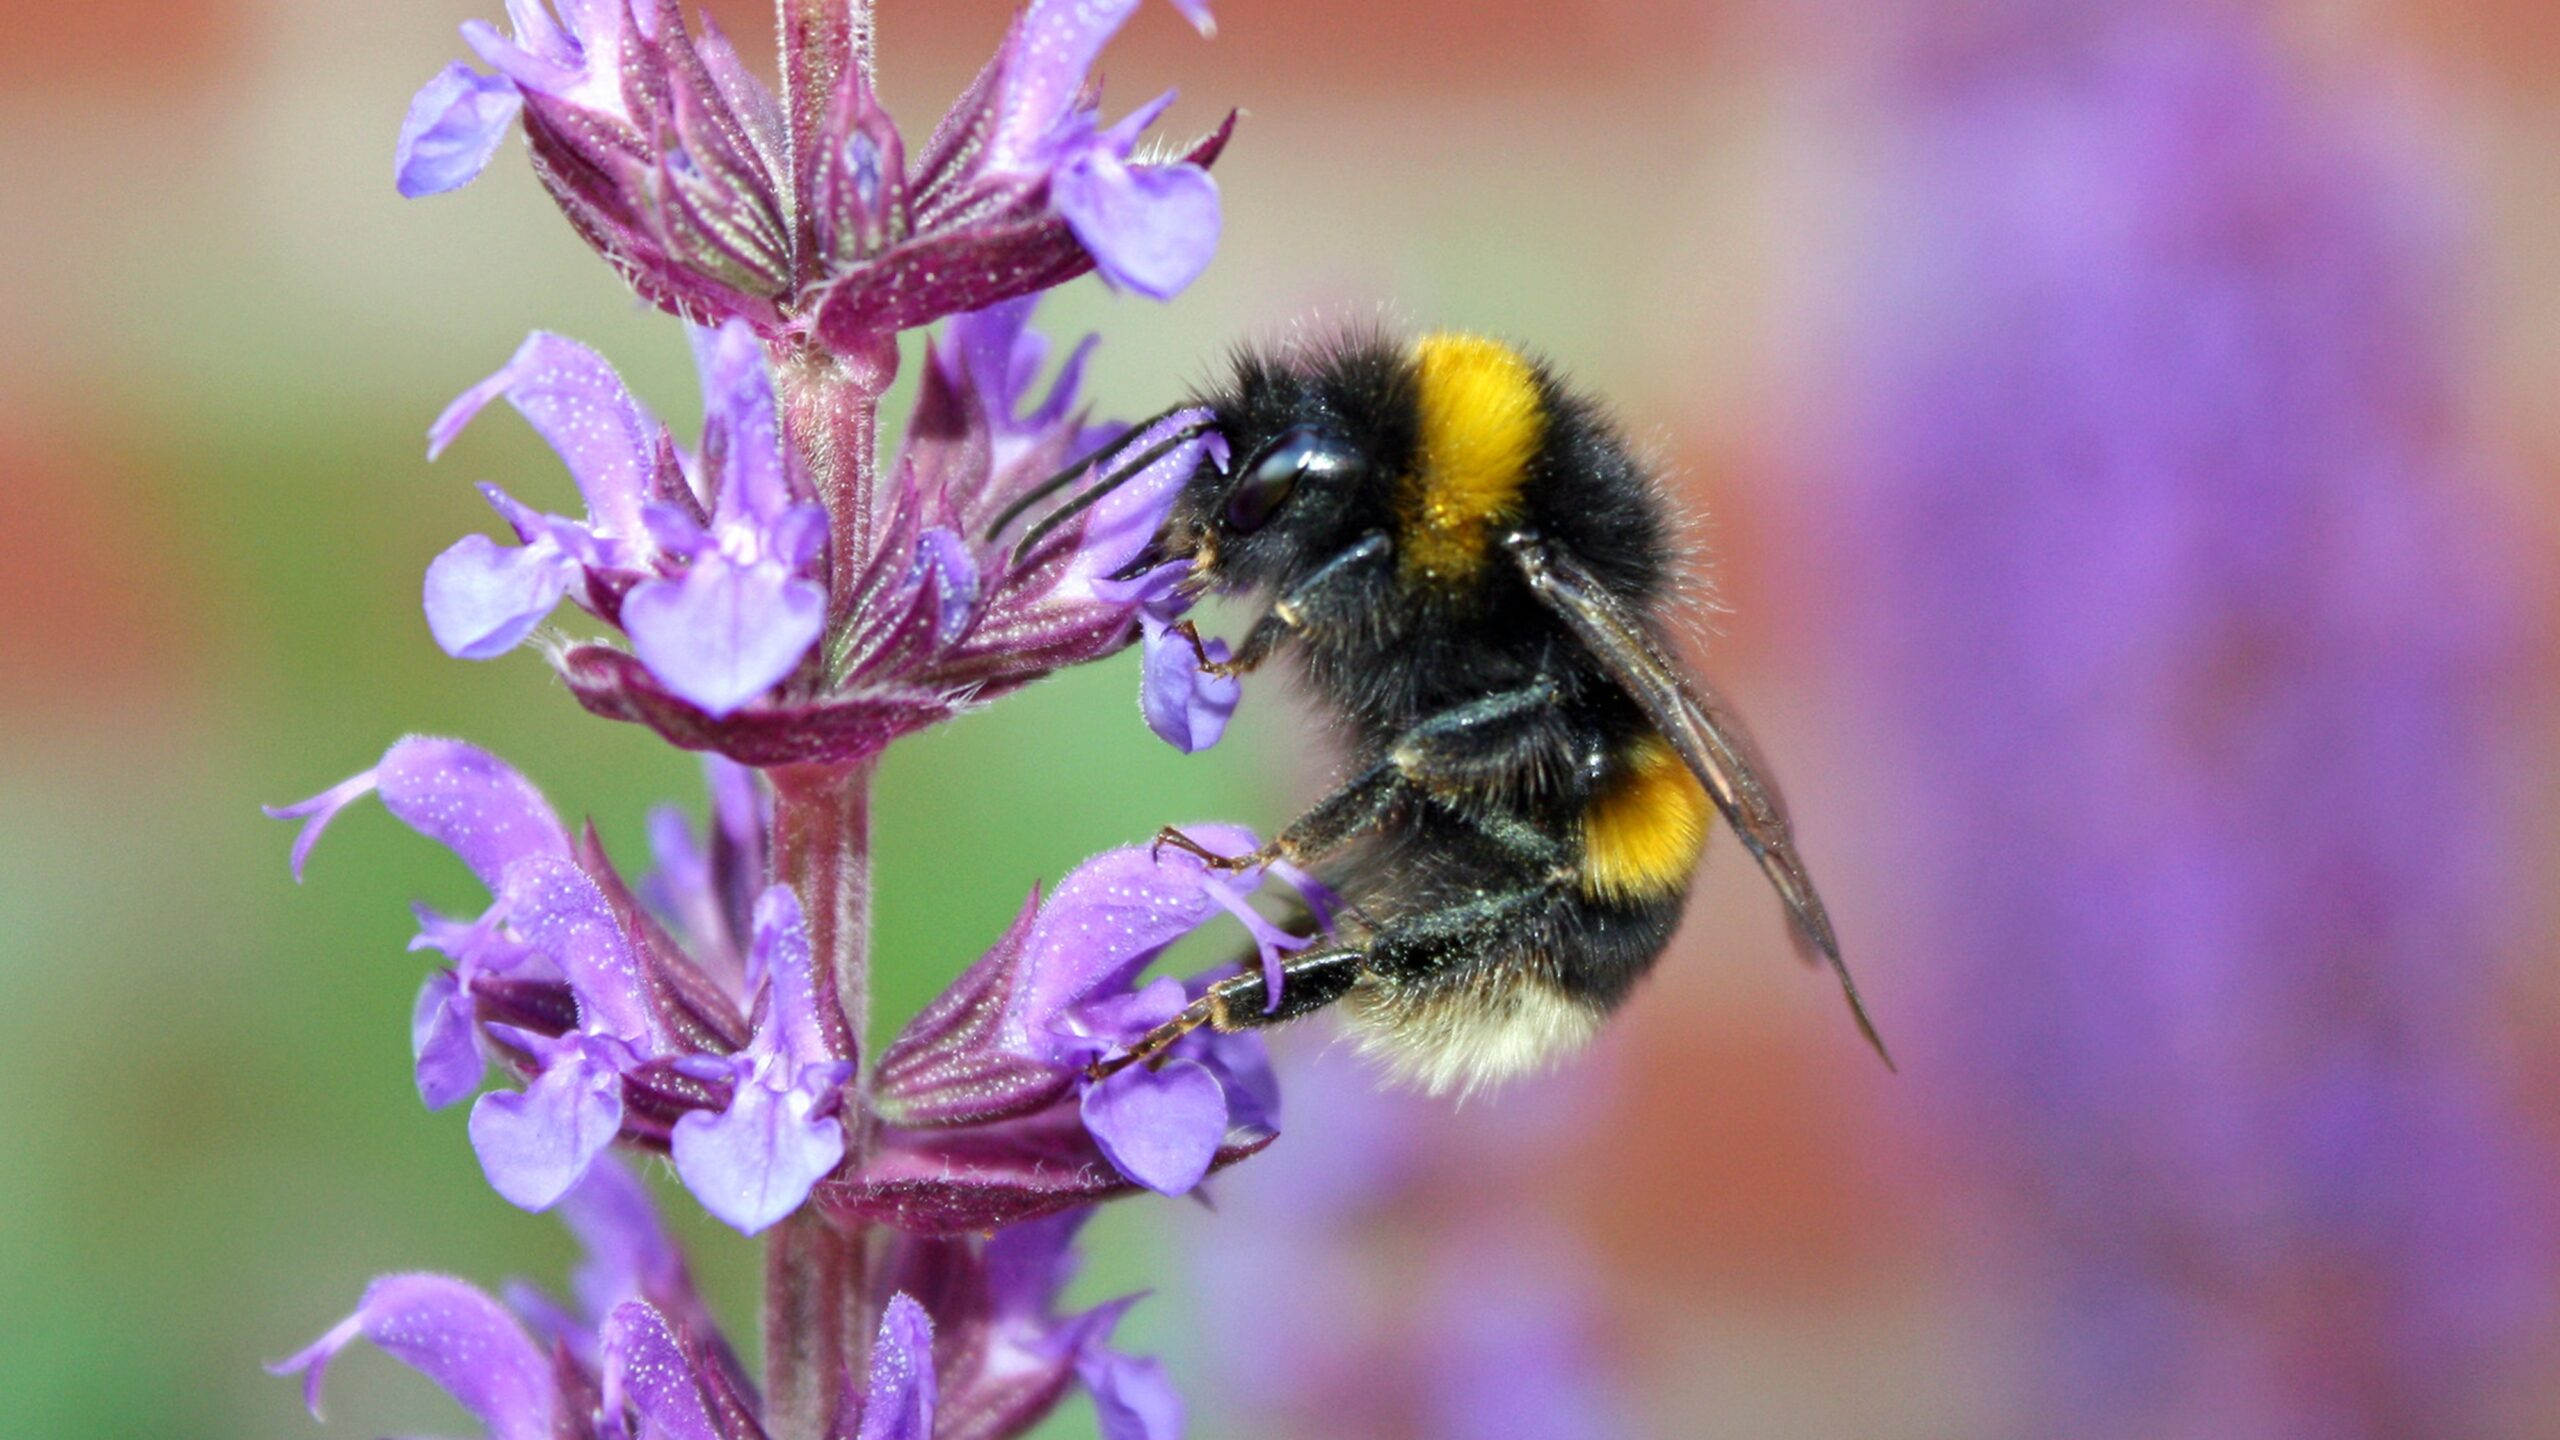 The Bee | Busy Bees at work: and other pollinators in our landscape